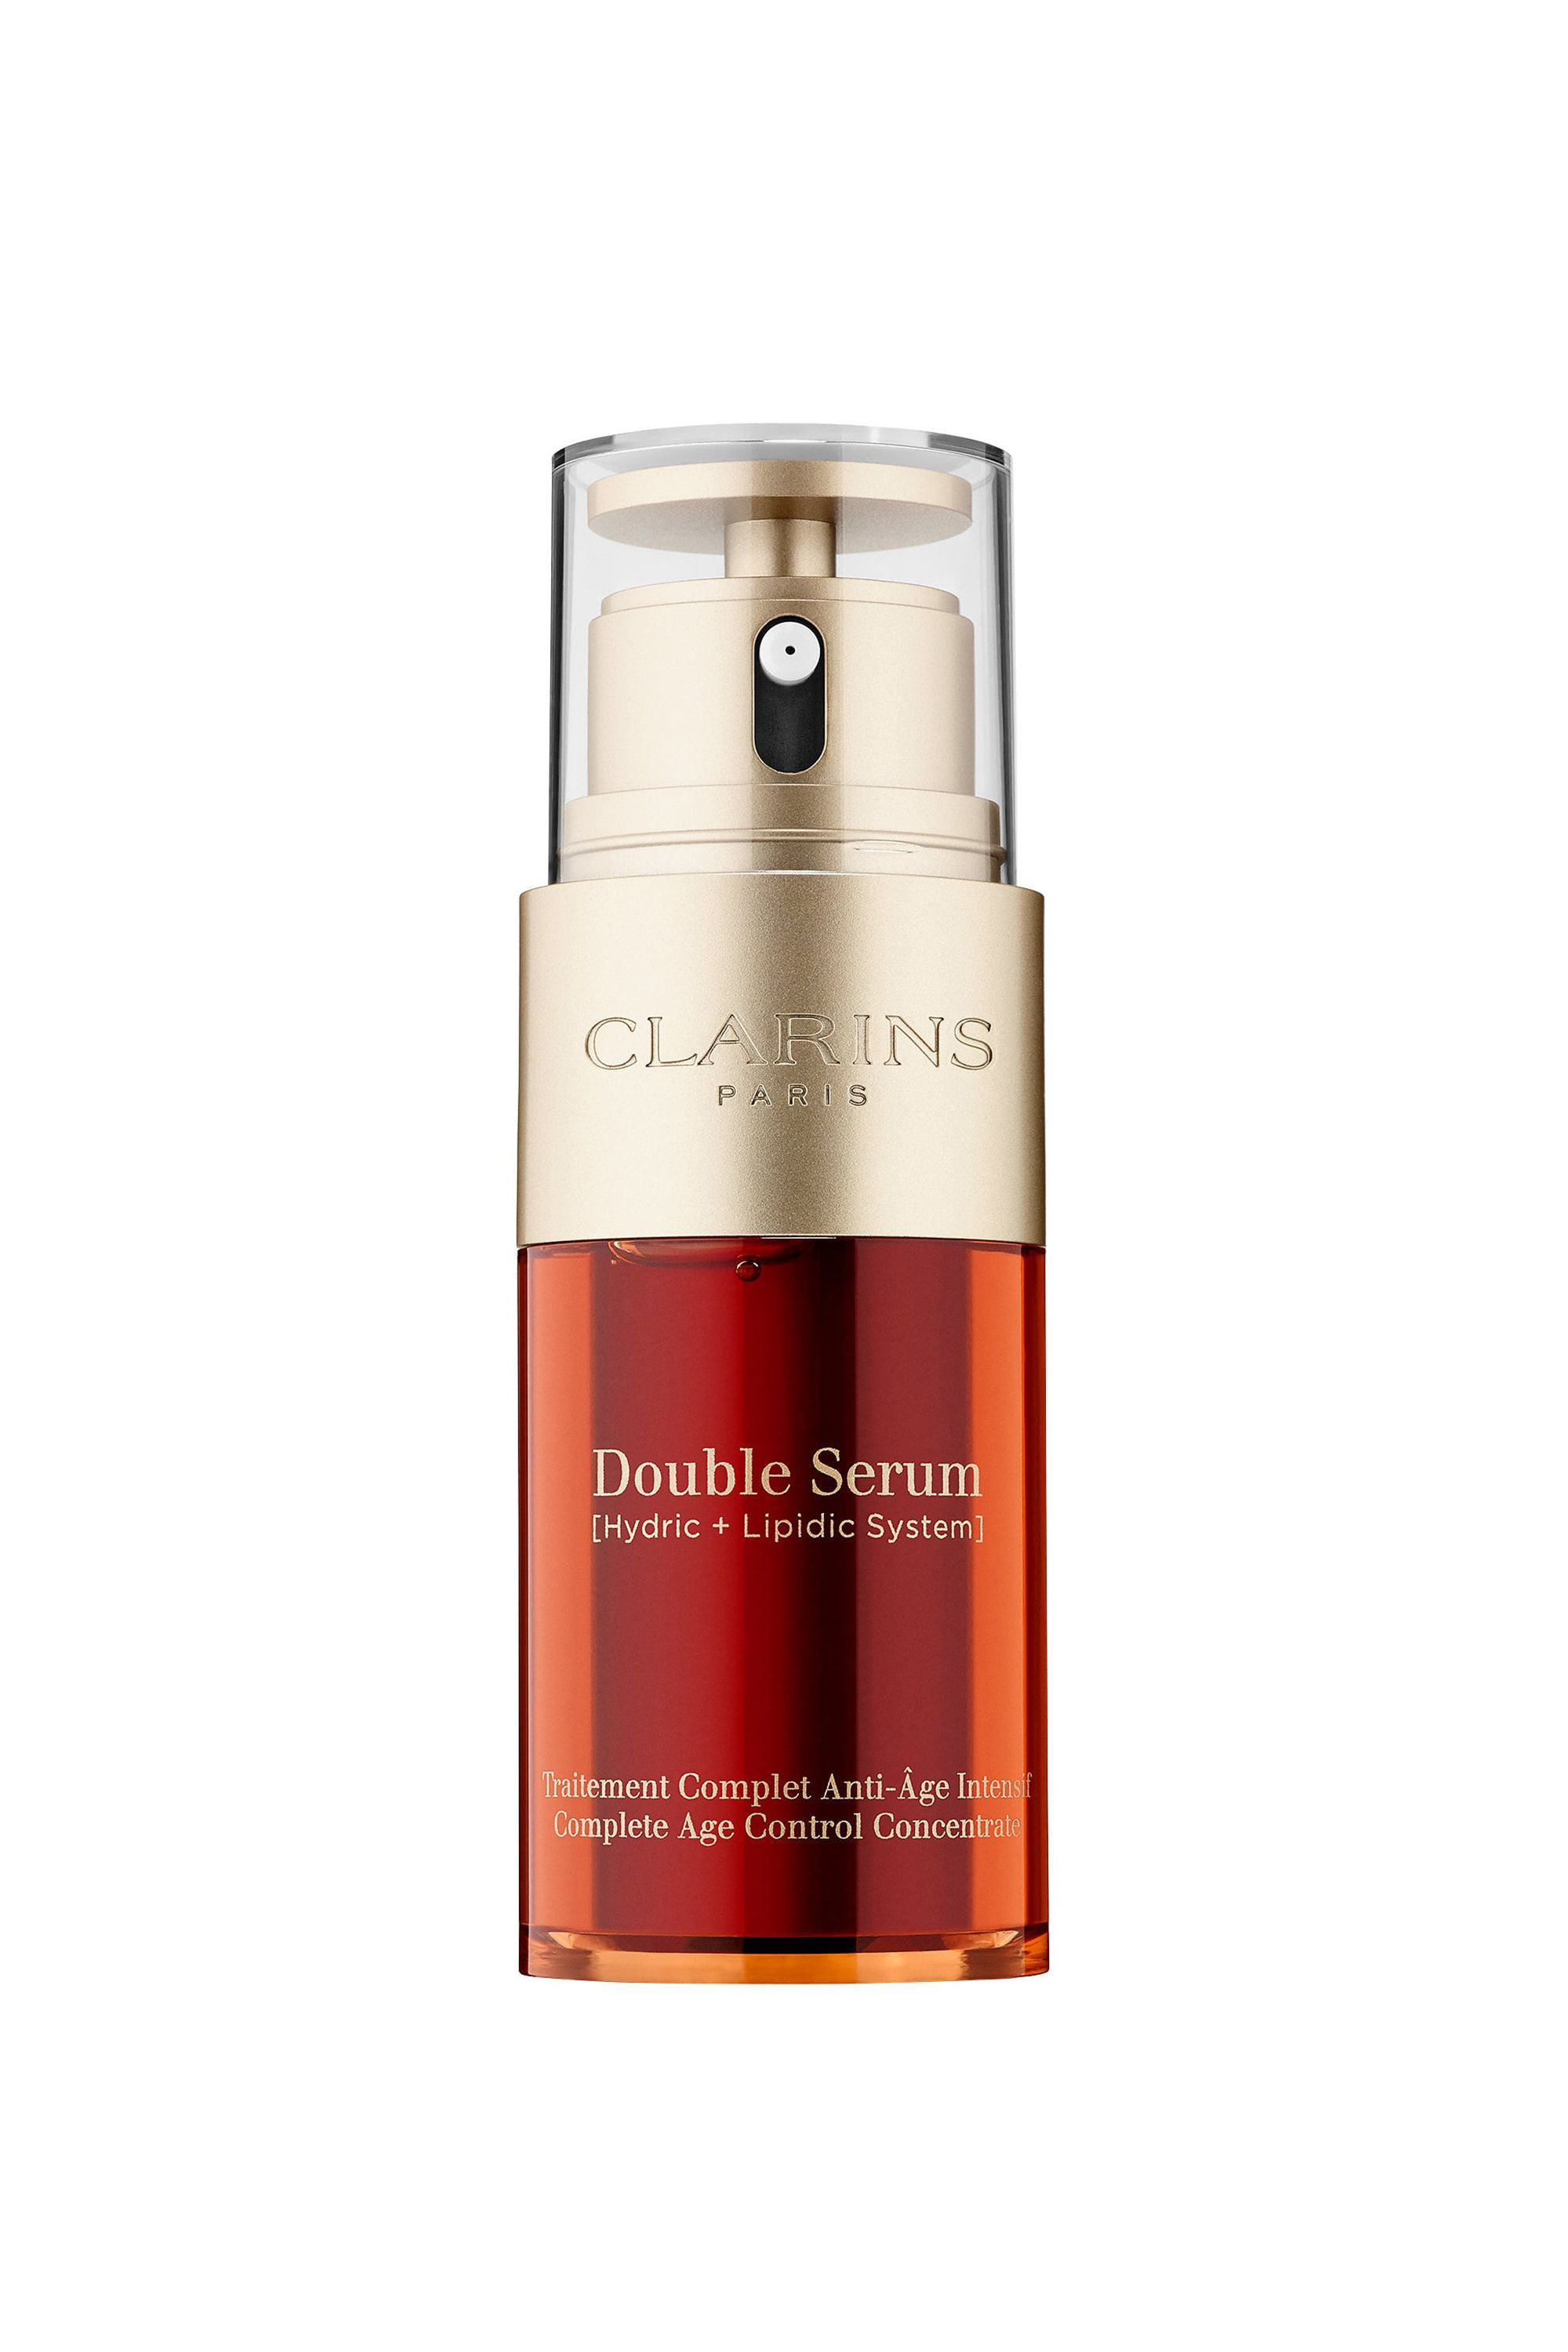 The Botanical Beauty Double Serum Complete Age Control Concentrate Clarins saksfifthavenue.com $89.00 SHOP NOW Some of the best plant-based extracts are water-soluble. Others can only thrive in oil-based solutions.